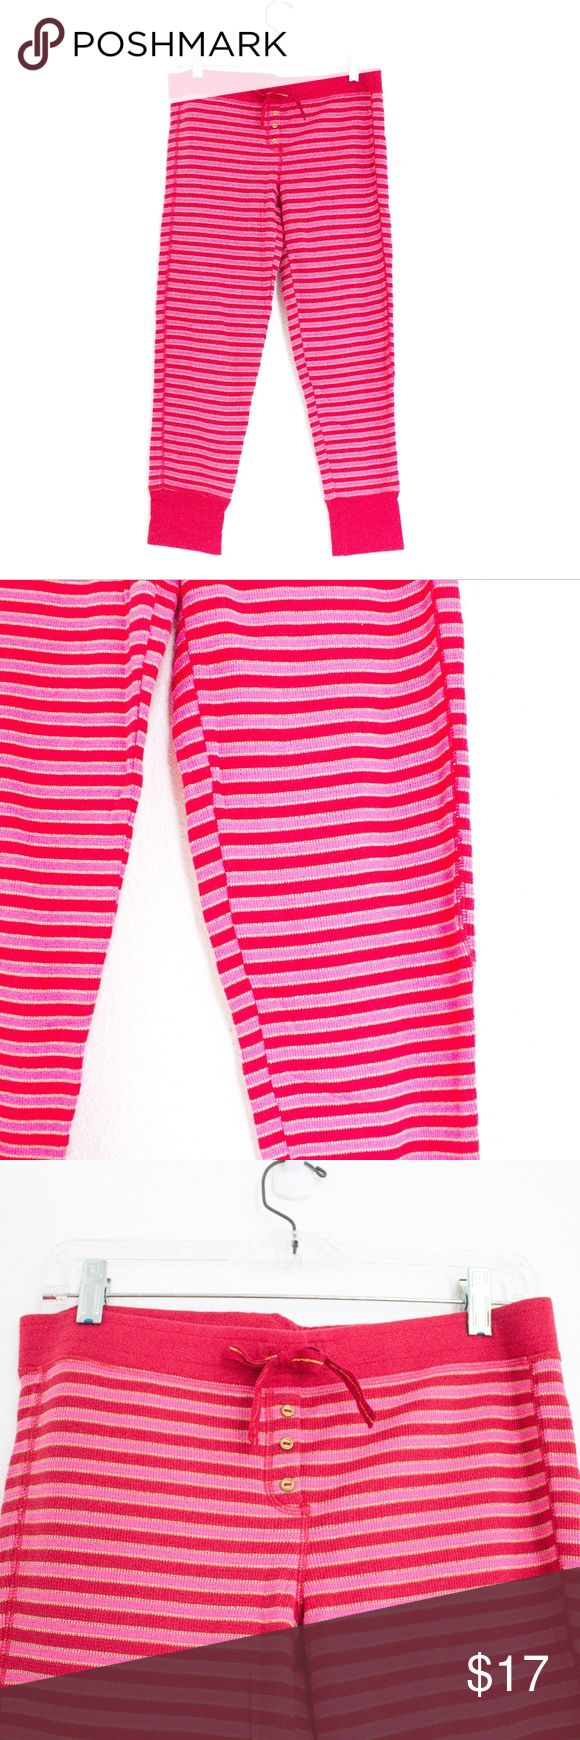 [Victoria's Secret] Red Pink Stripe Thermal PJs M VICTORIAS SECRET Women's Red Pink Gold Stripe Cropped Thermal PJ Pants Sz M  These adorable pj/lounge pants have a red waist band with red and pink stripes that are outlined with gold. These have a thermal or waffle like pattern and have a stretchy ankle band at the bottom of the legs. Additionally, there is a drawstring for extra comfort and hold. Item has a small pin hole on the right front waistband (see photos) but overall EUC…